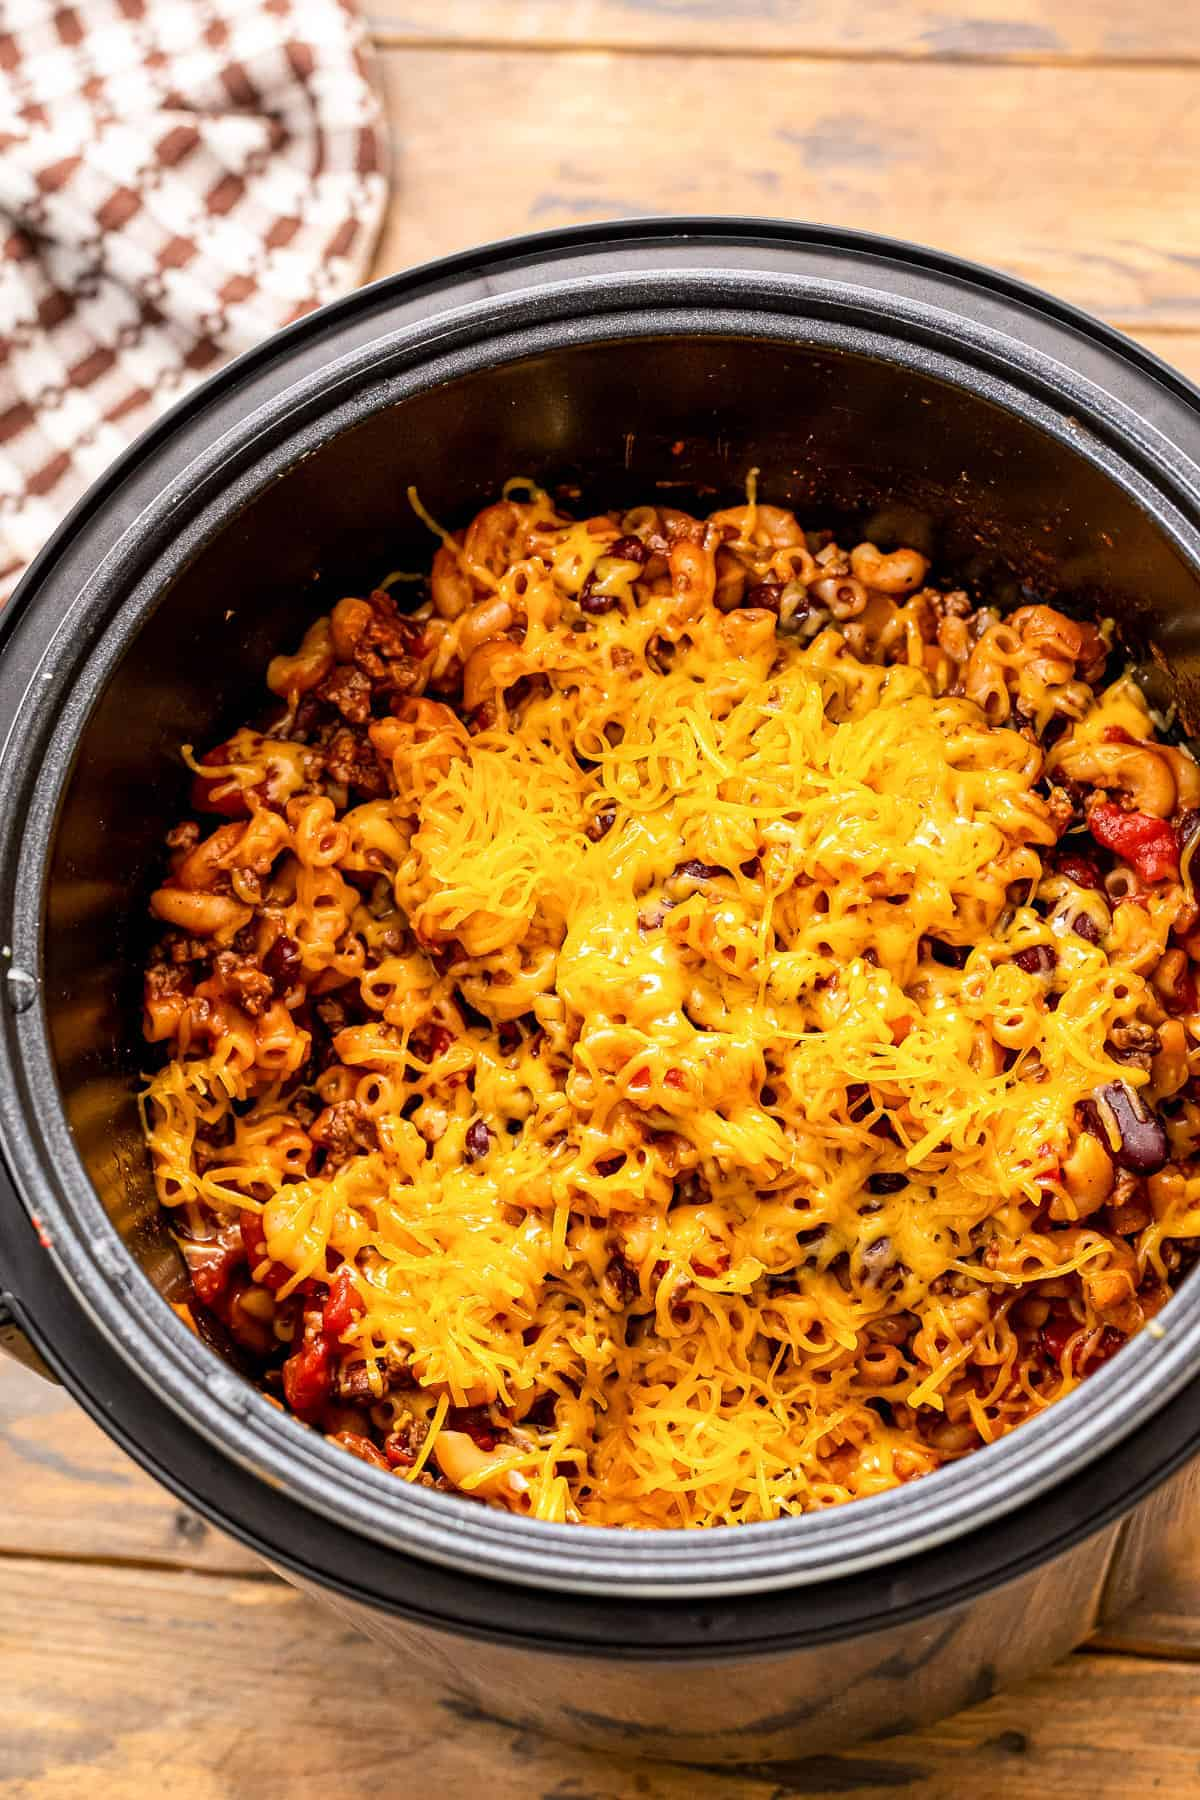 Chili Mac with cheese on top in pressure cooker